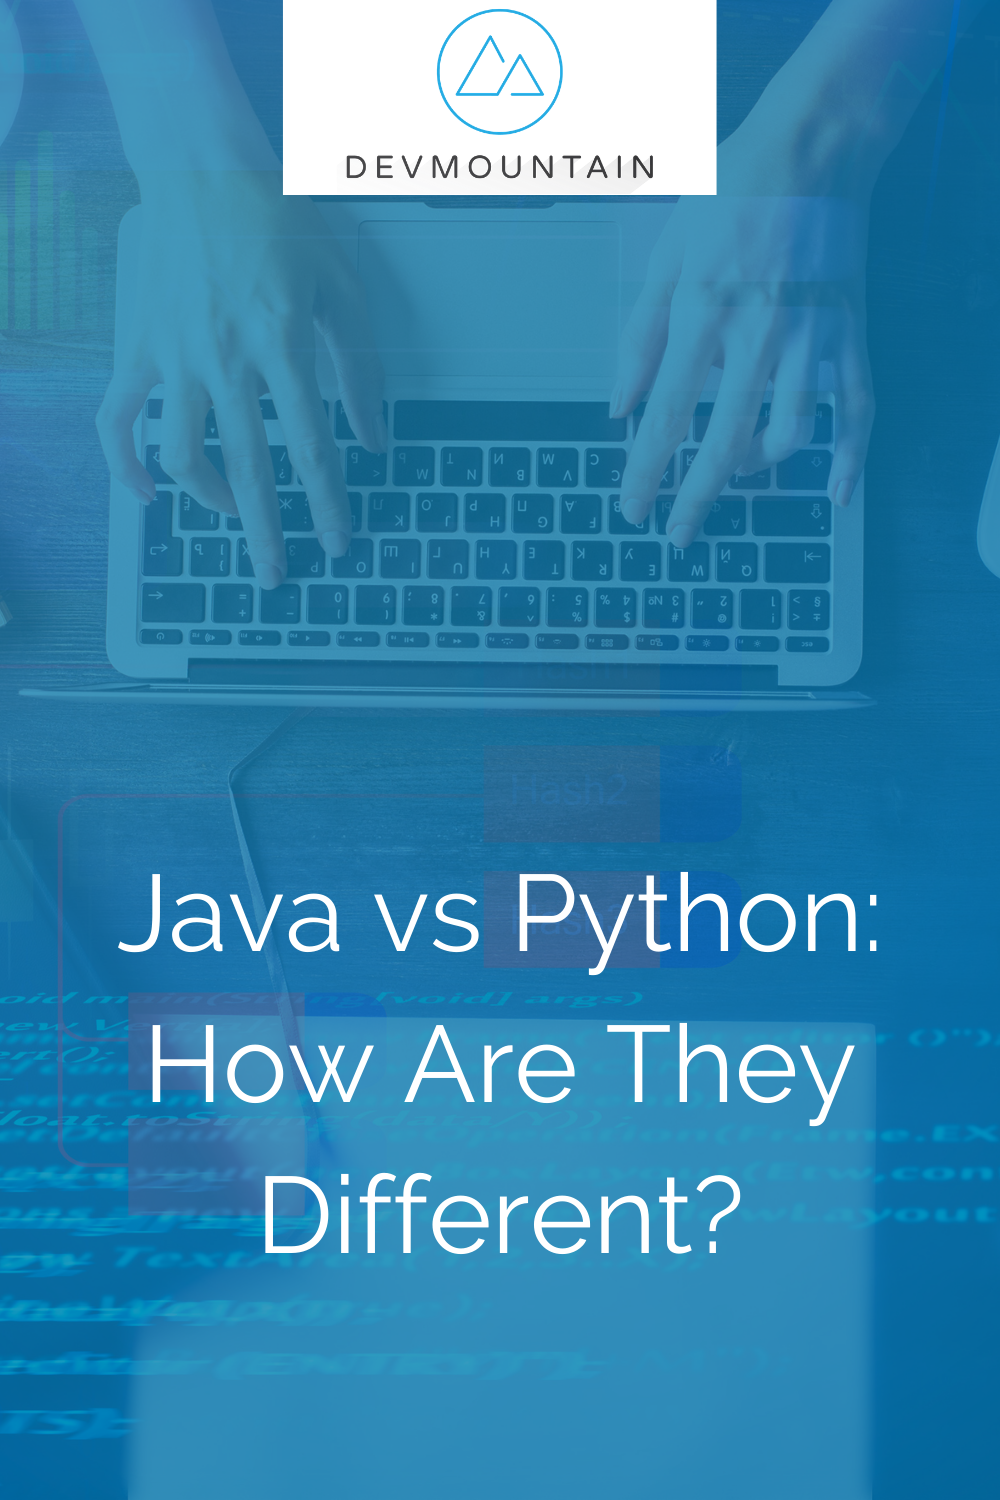 Java vs Python: How Are They Different?